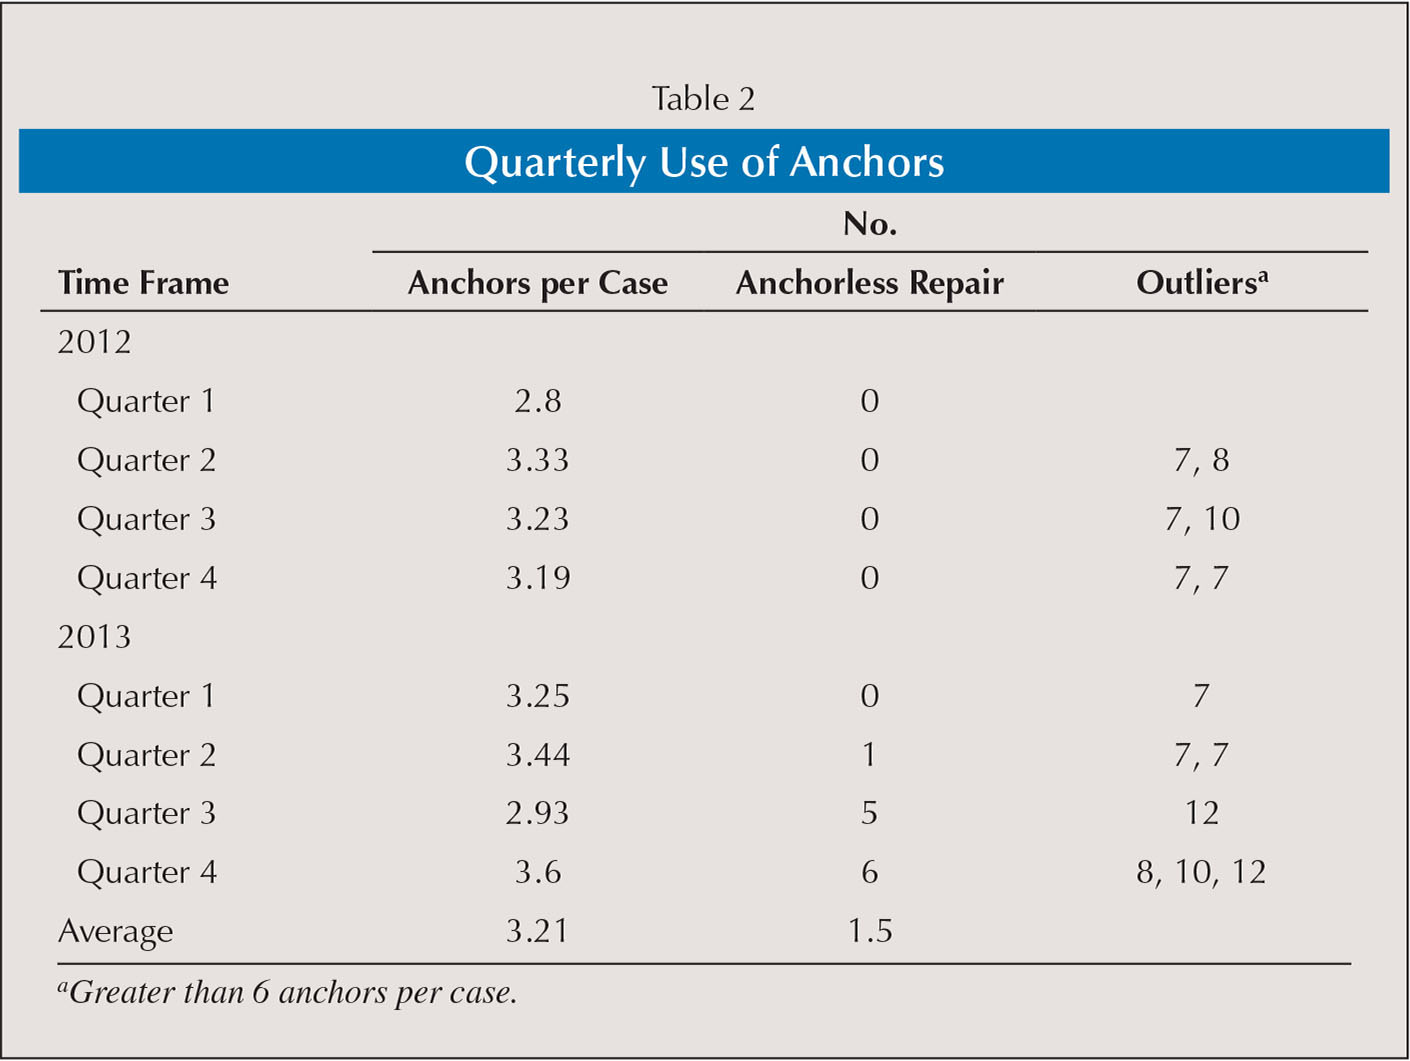 Quarterly Use of Anchors